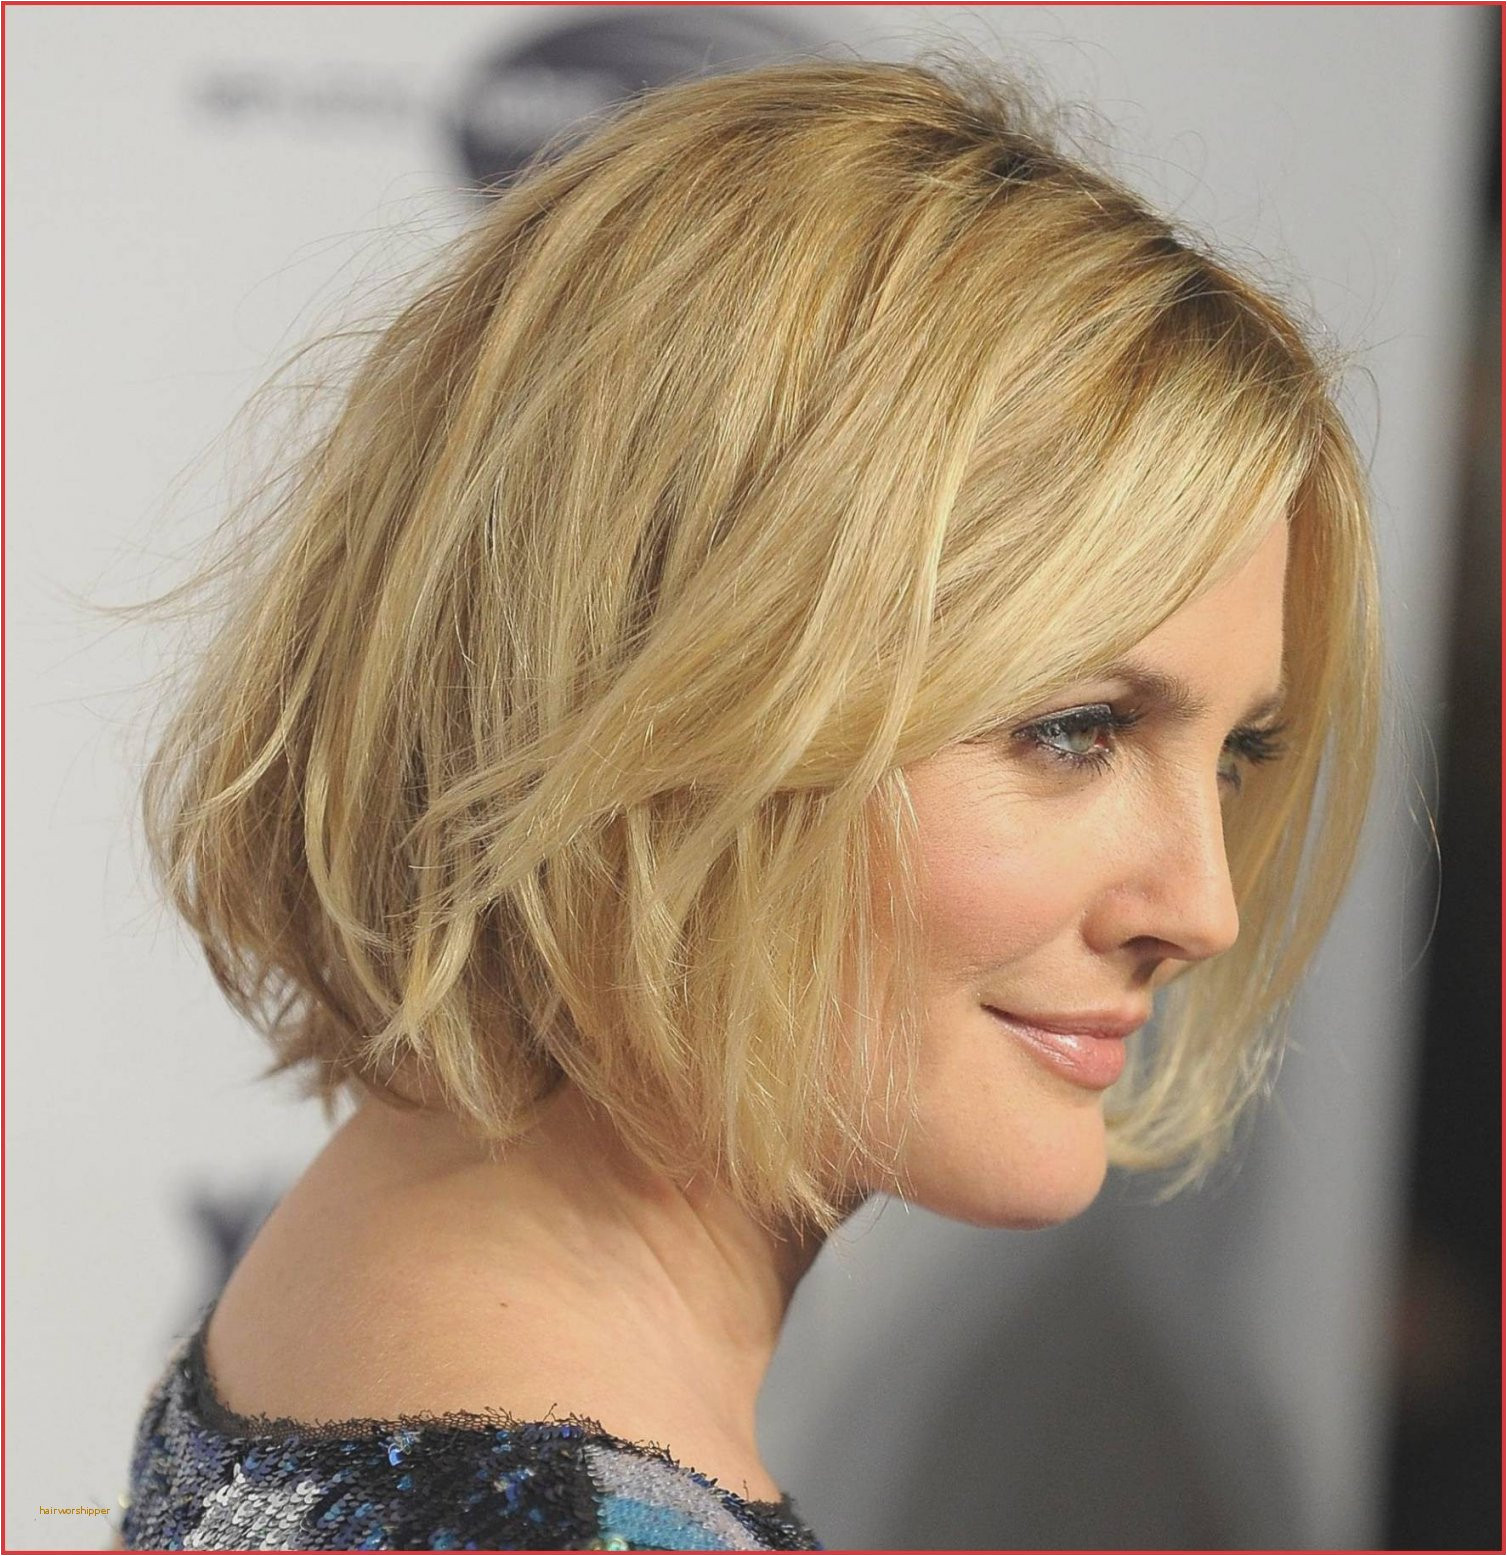 Shoulder Length Hair Styles Beautiful Medium Length Bob Hairstyles New I Pinimg 1200x 0d 60 8a 20 Beautiful Best Hairstyles for Square Faces Over 50